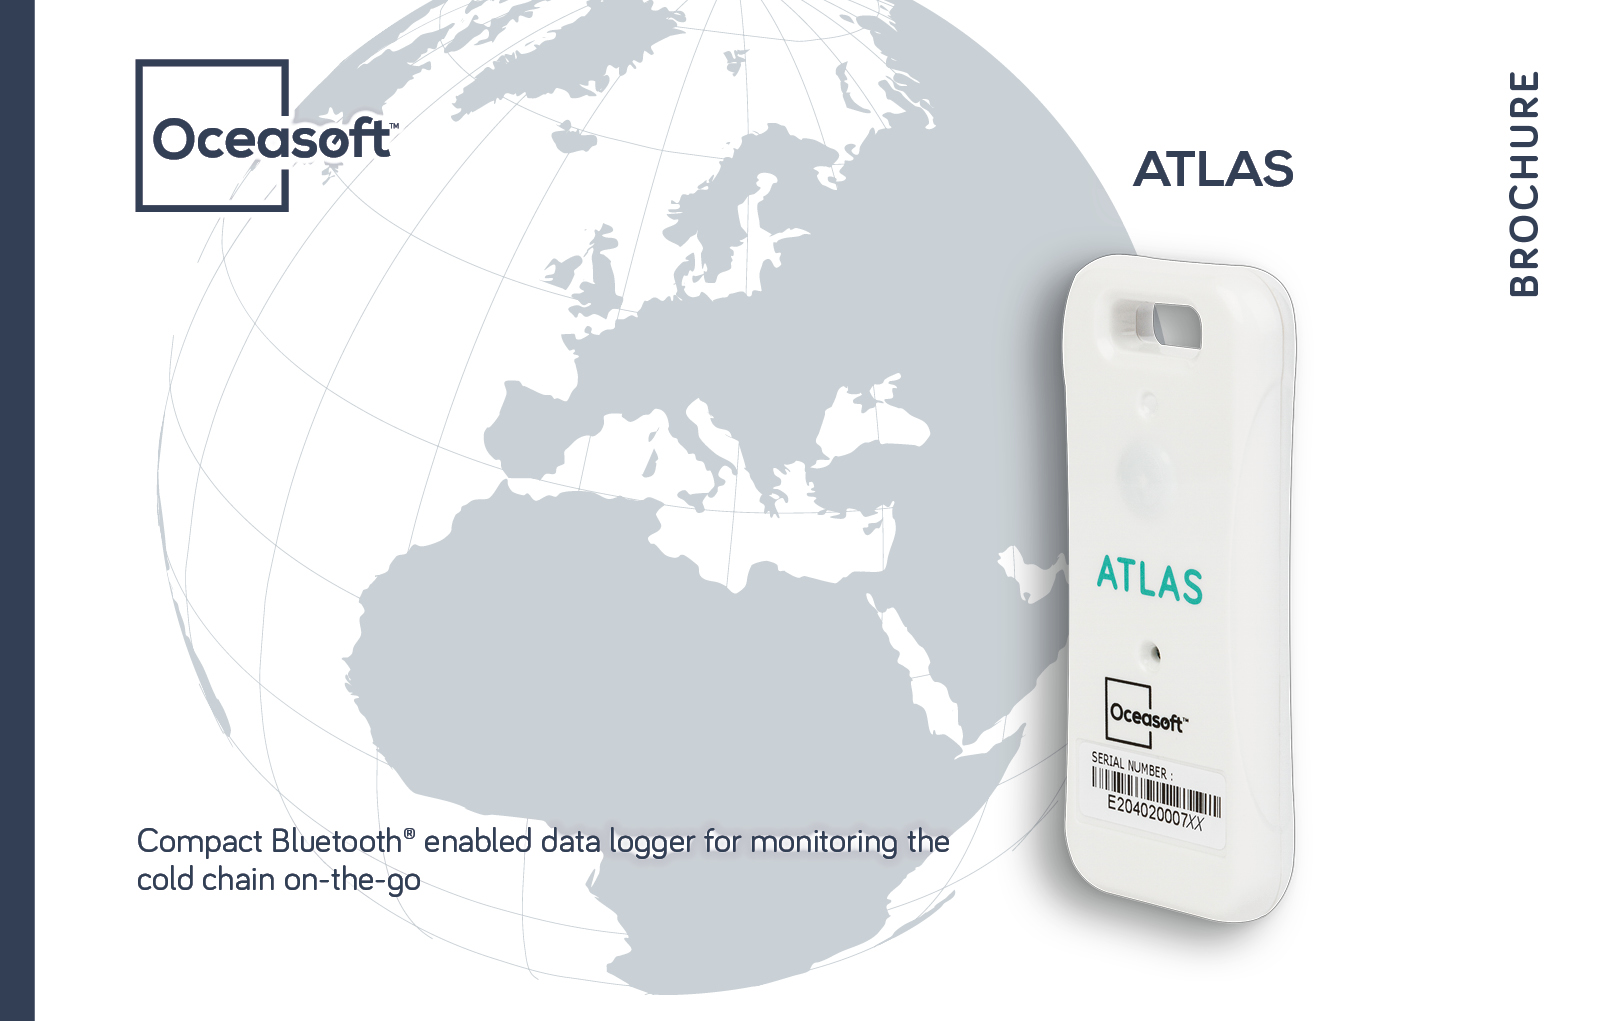 Download the Atlas brochure